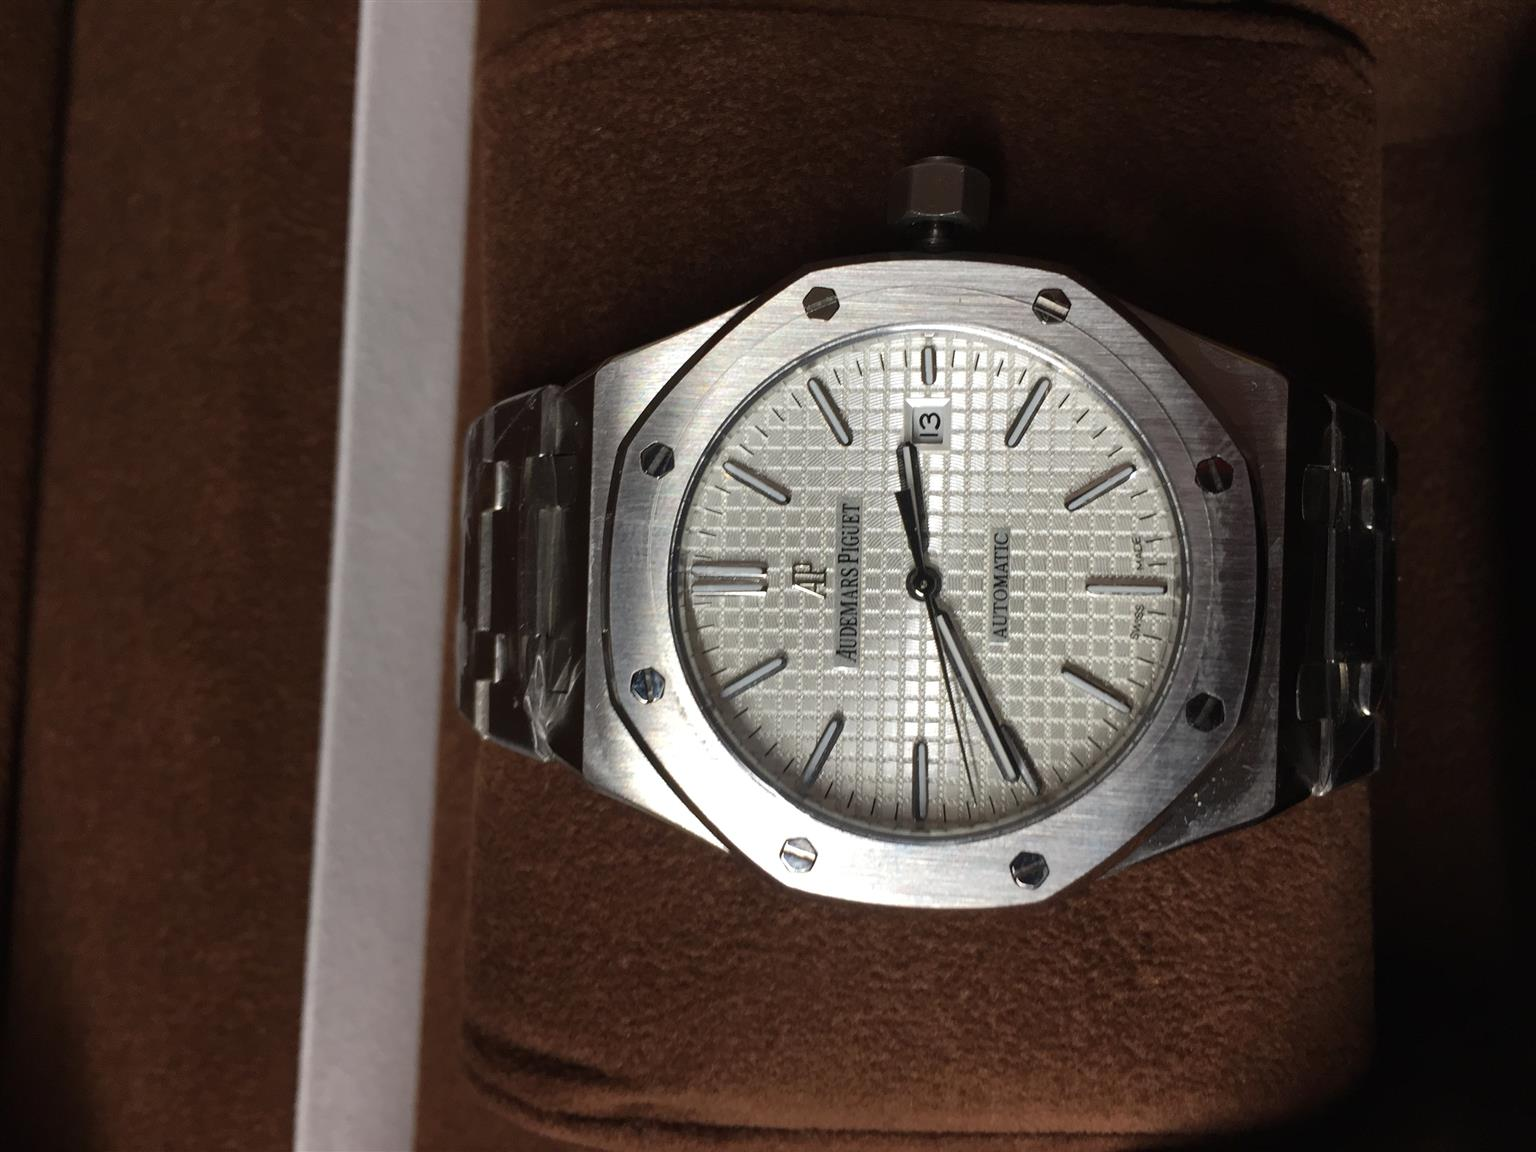 AP Aaa grade, Fully Automatic, Stainless steel, Mineral Crystal Glass